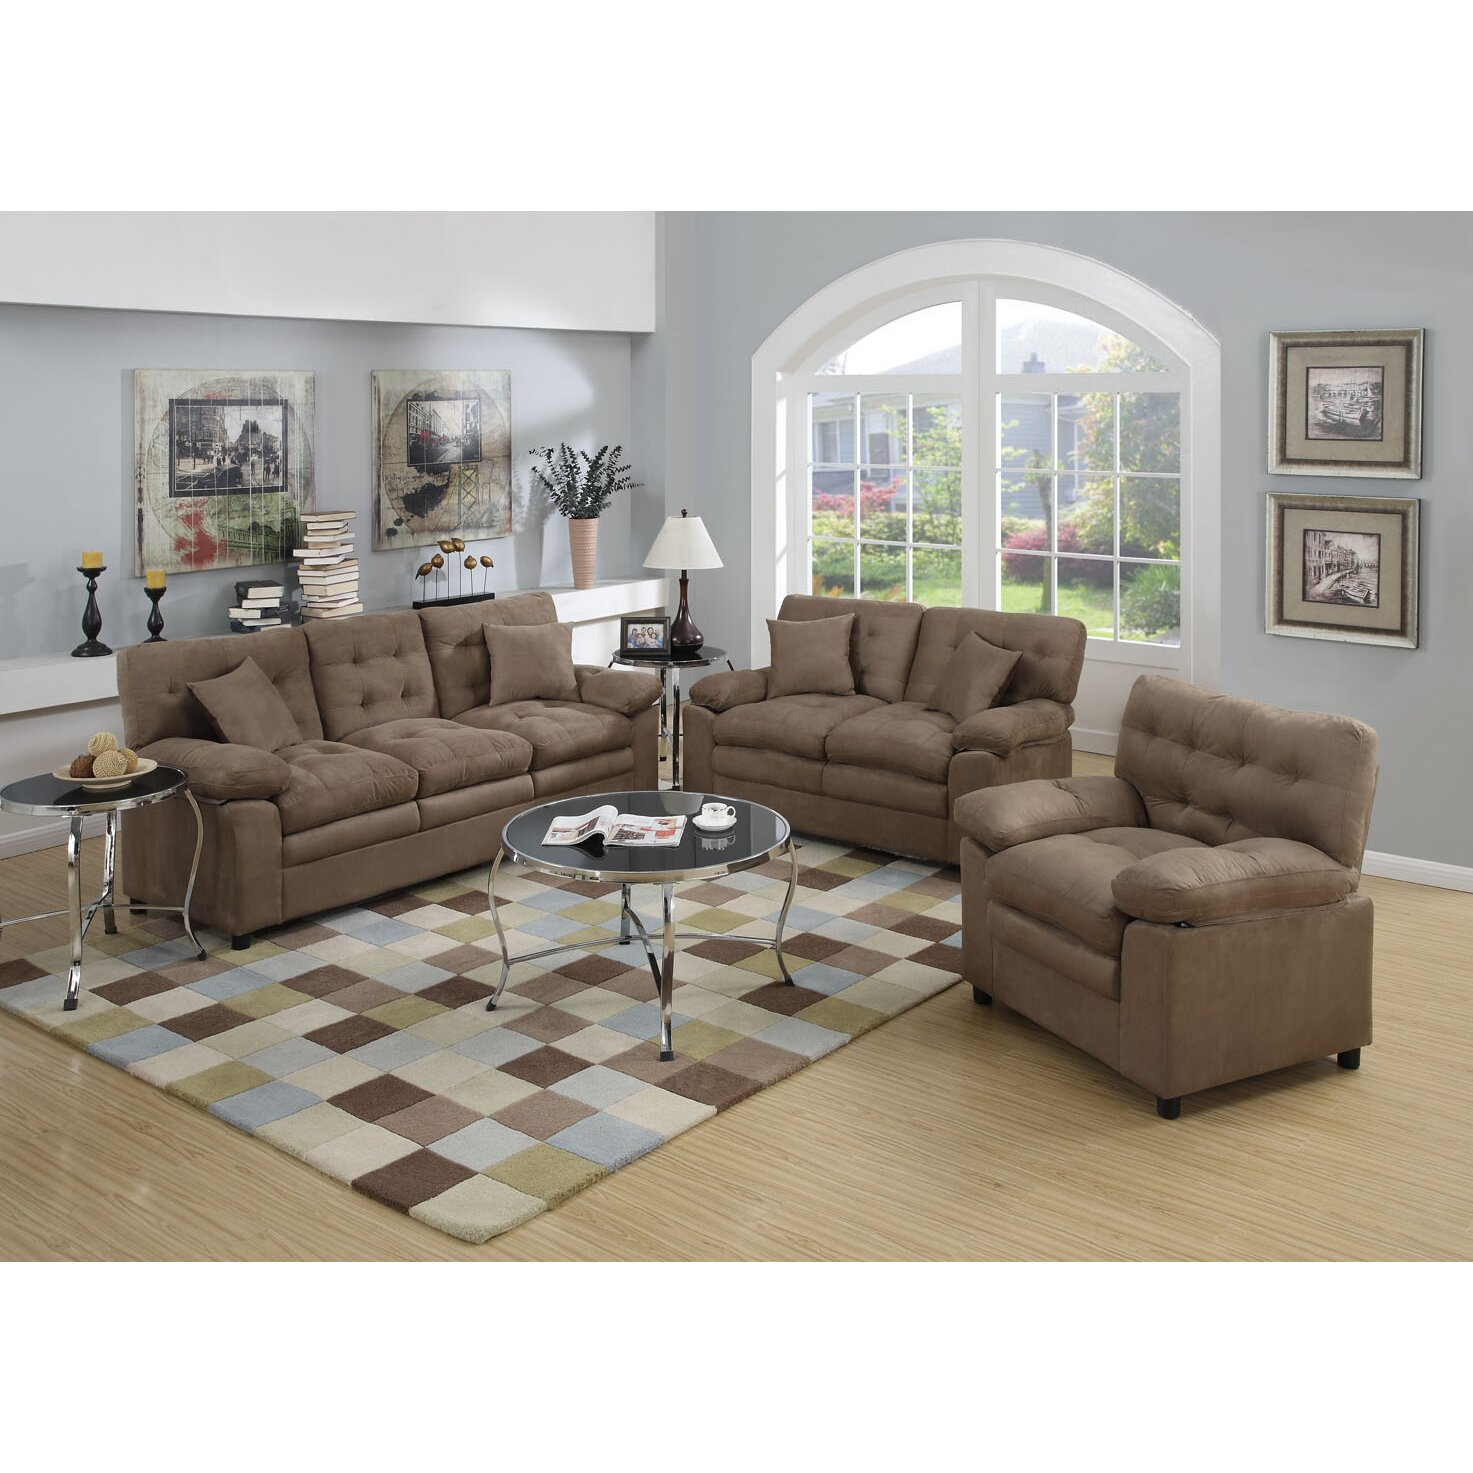 Poundex bobkona colona 3 piece living room set reviews for Drawing room furniture catalogue